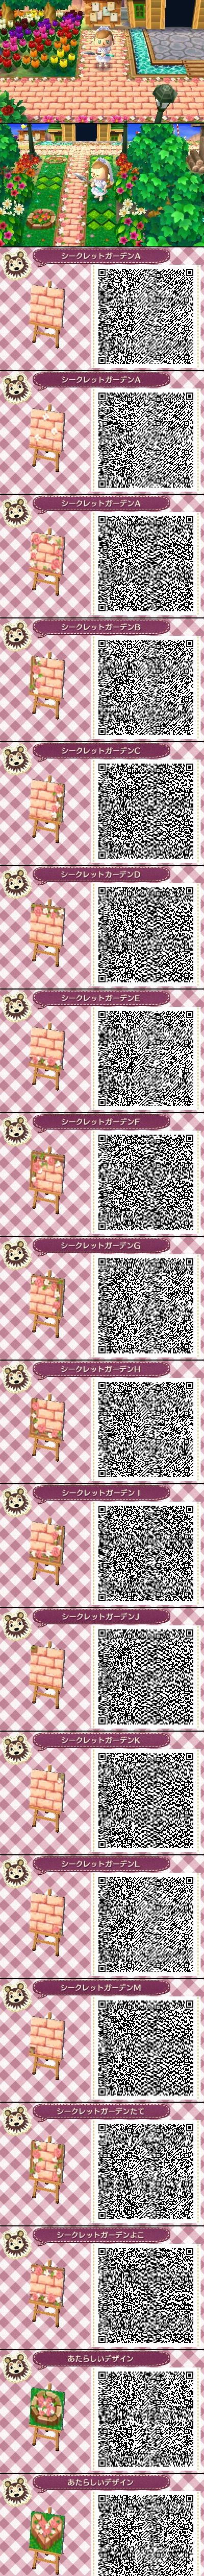 Animal Crossing New Leaf QR codes Pink stone path (click through for source and full images)fghfghfghfghfgh